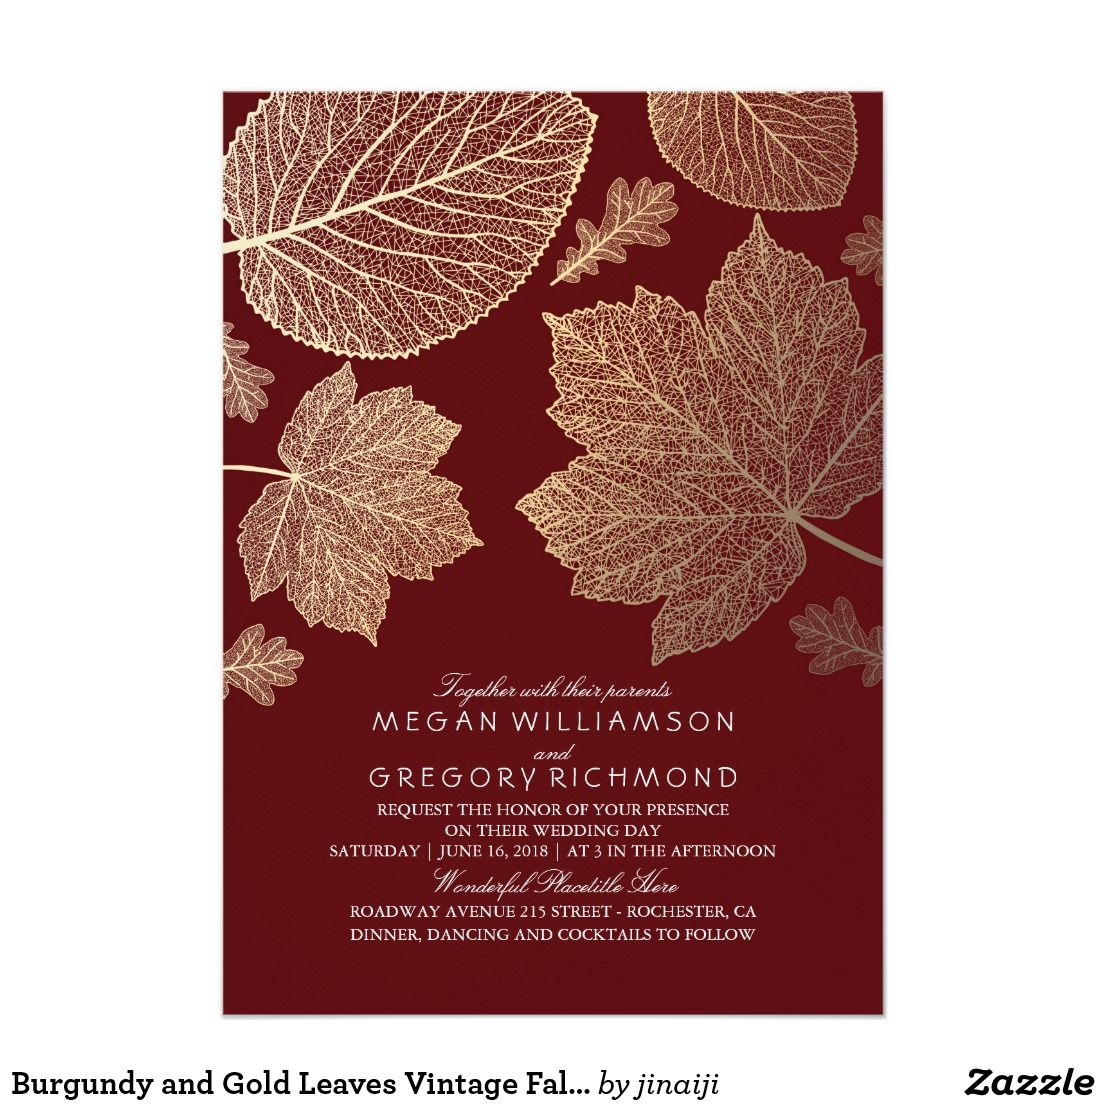 Burgundy and Gold Leaves Vintage Fall Wedding Card   Vintage fall ...